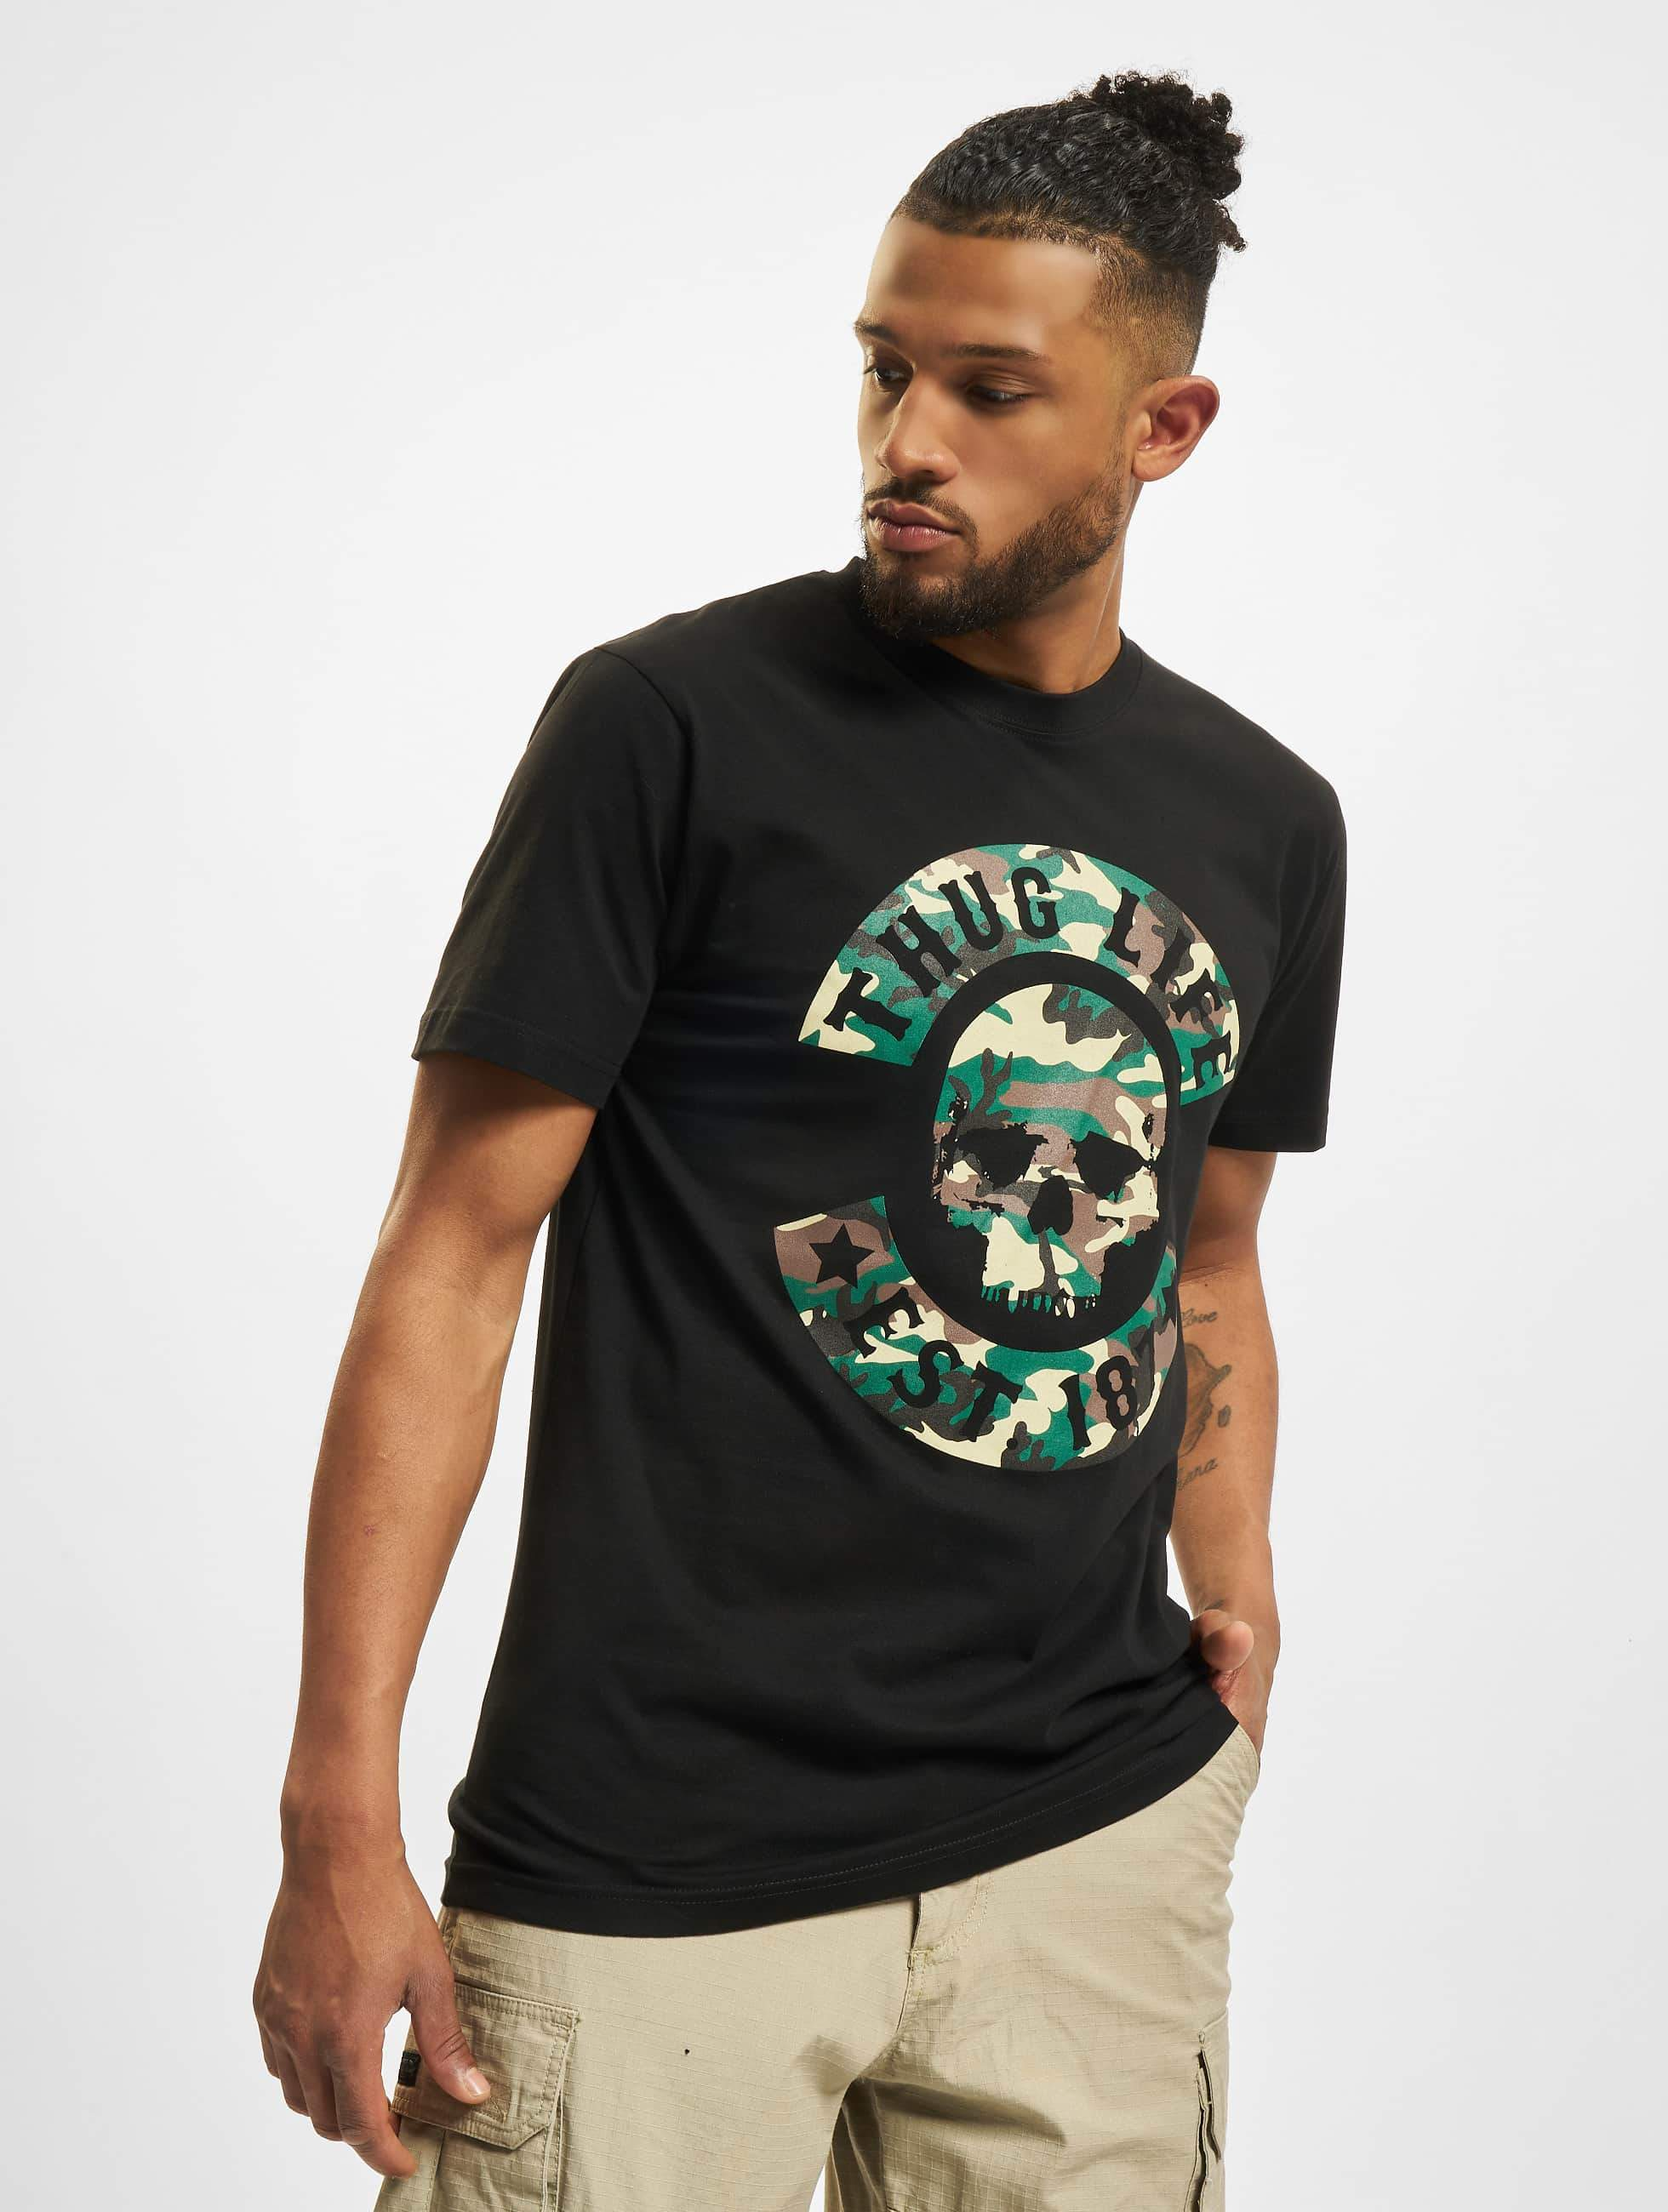 Thug Life / T-Shirt B. Camo in black 3XL